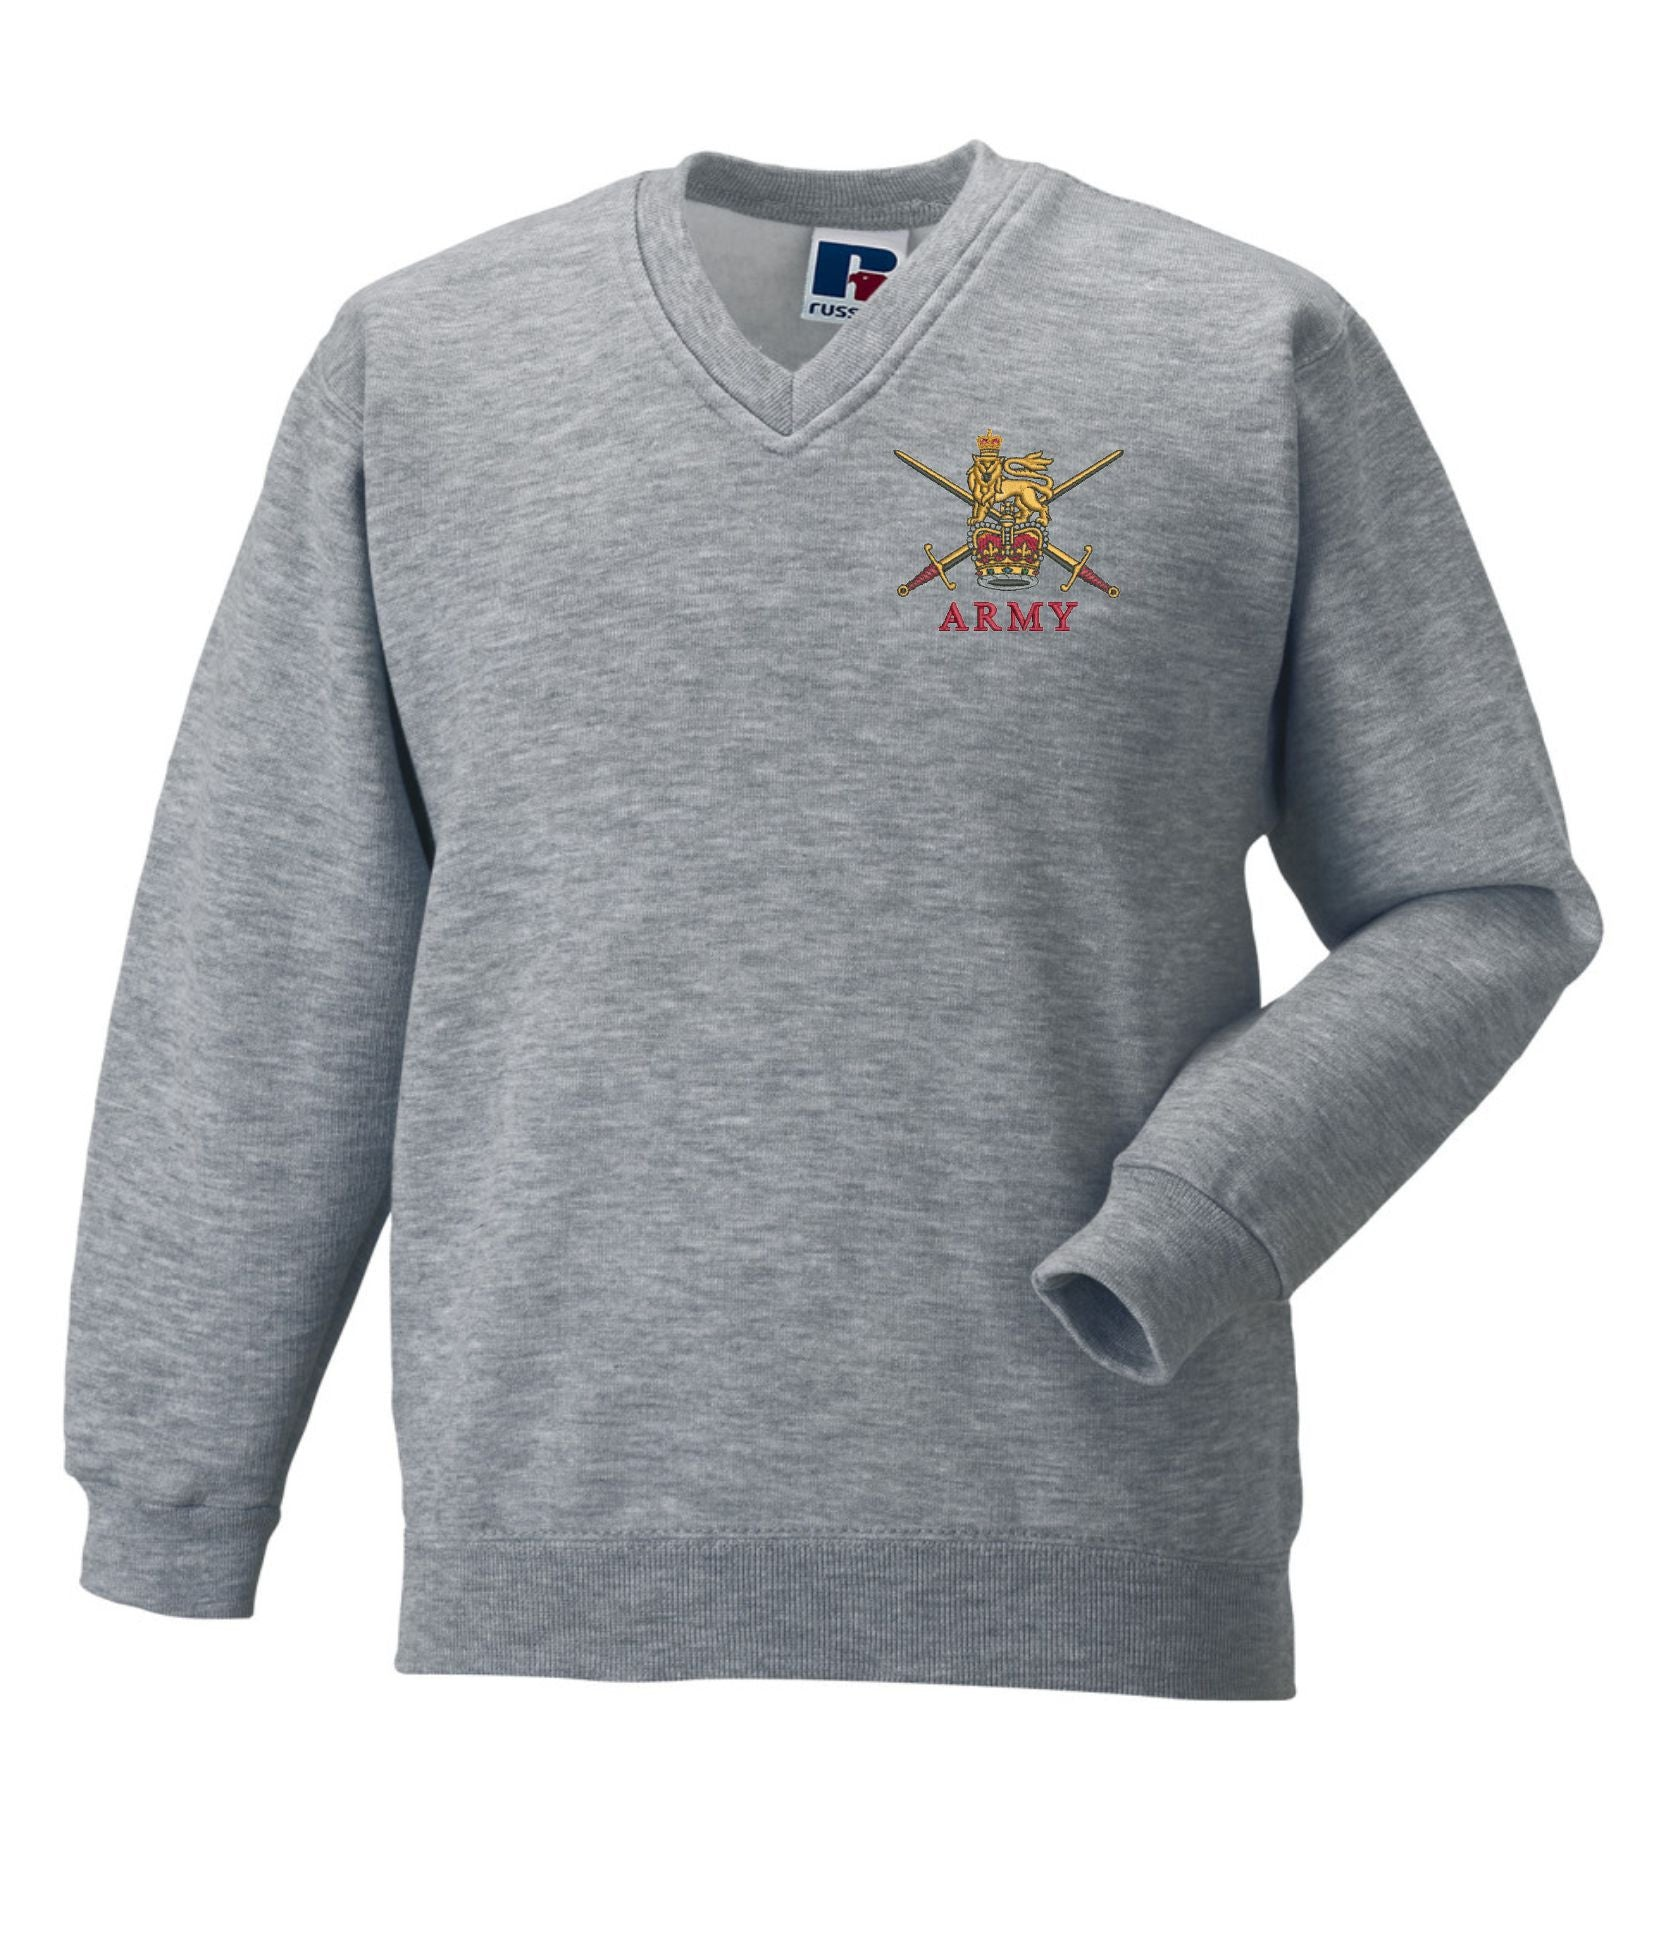 Army V Neck Sweatshirt